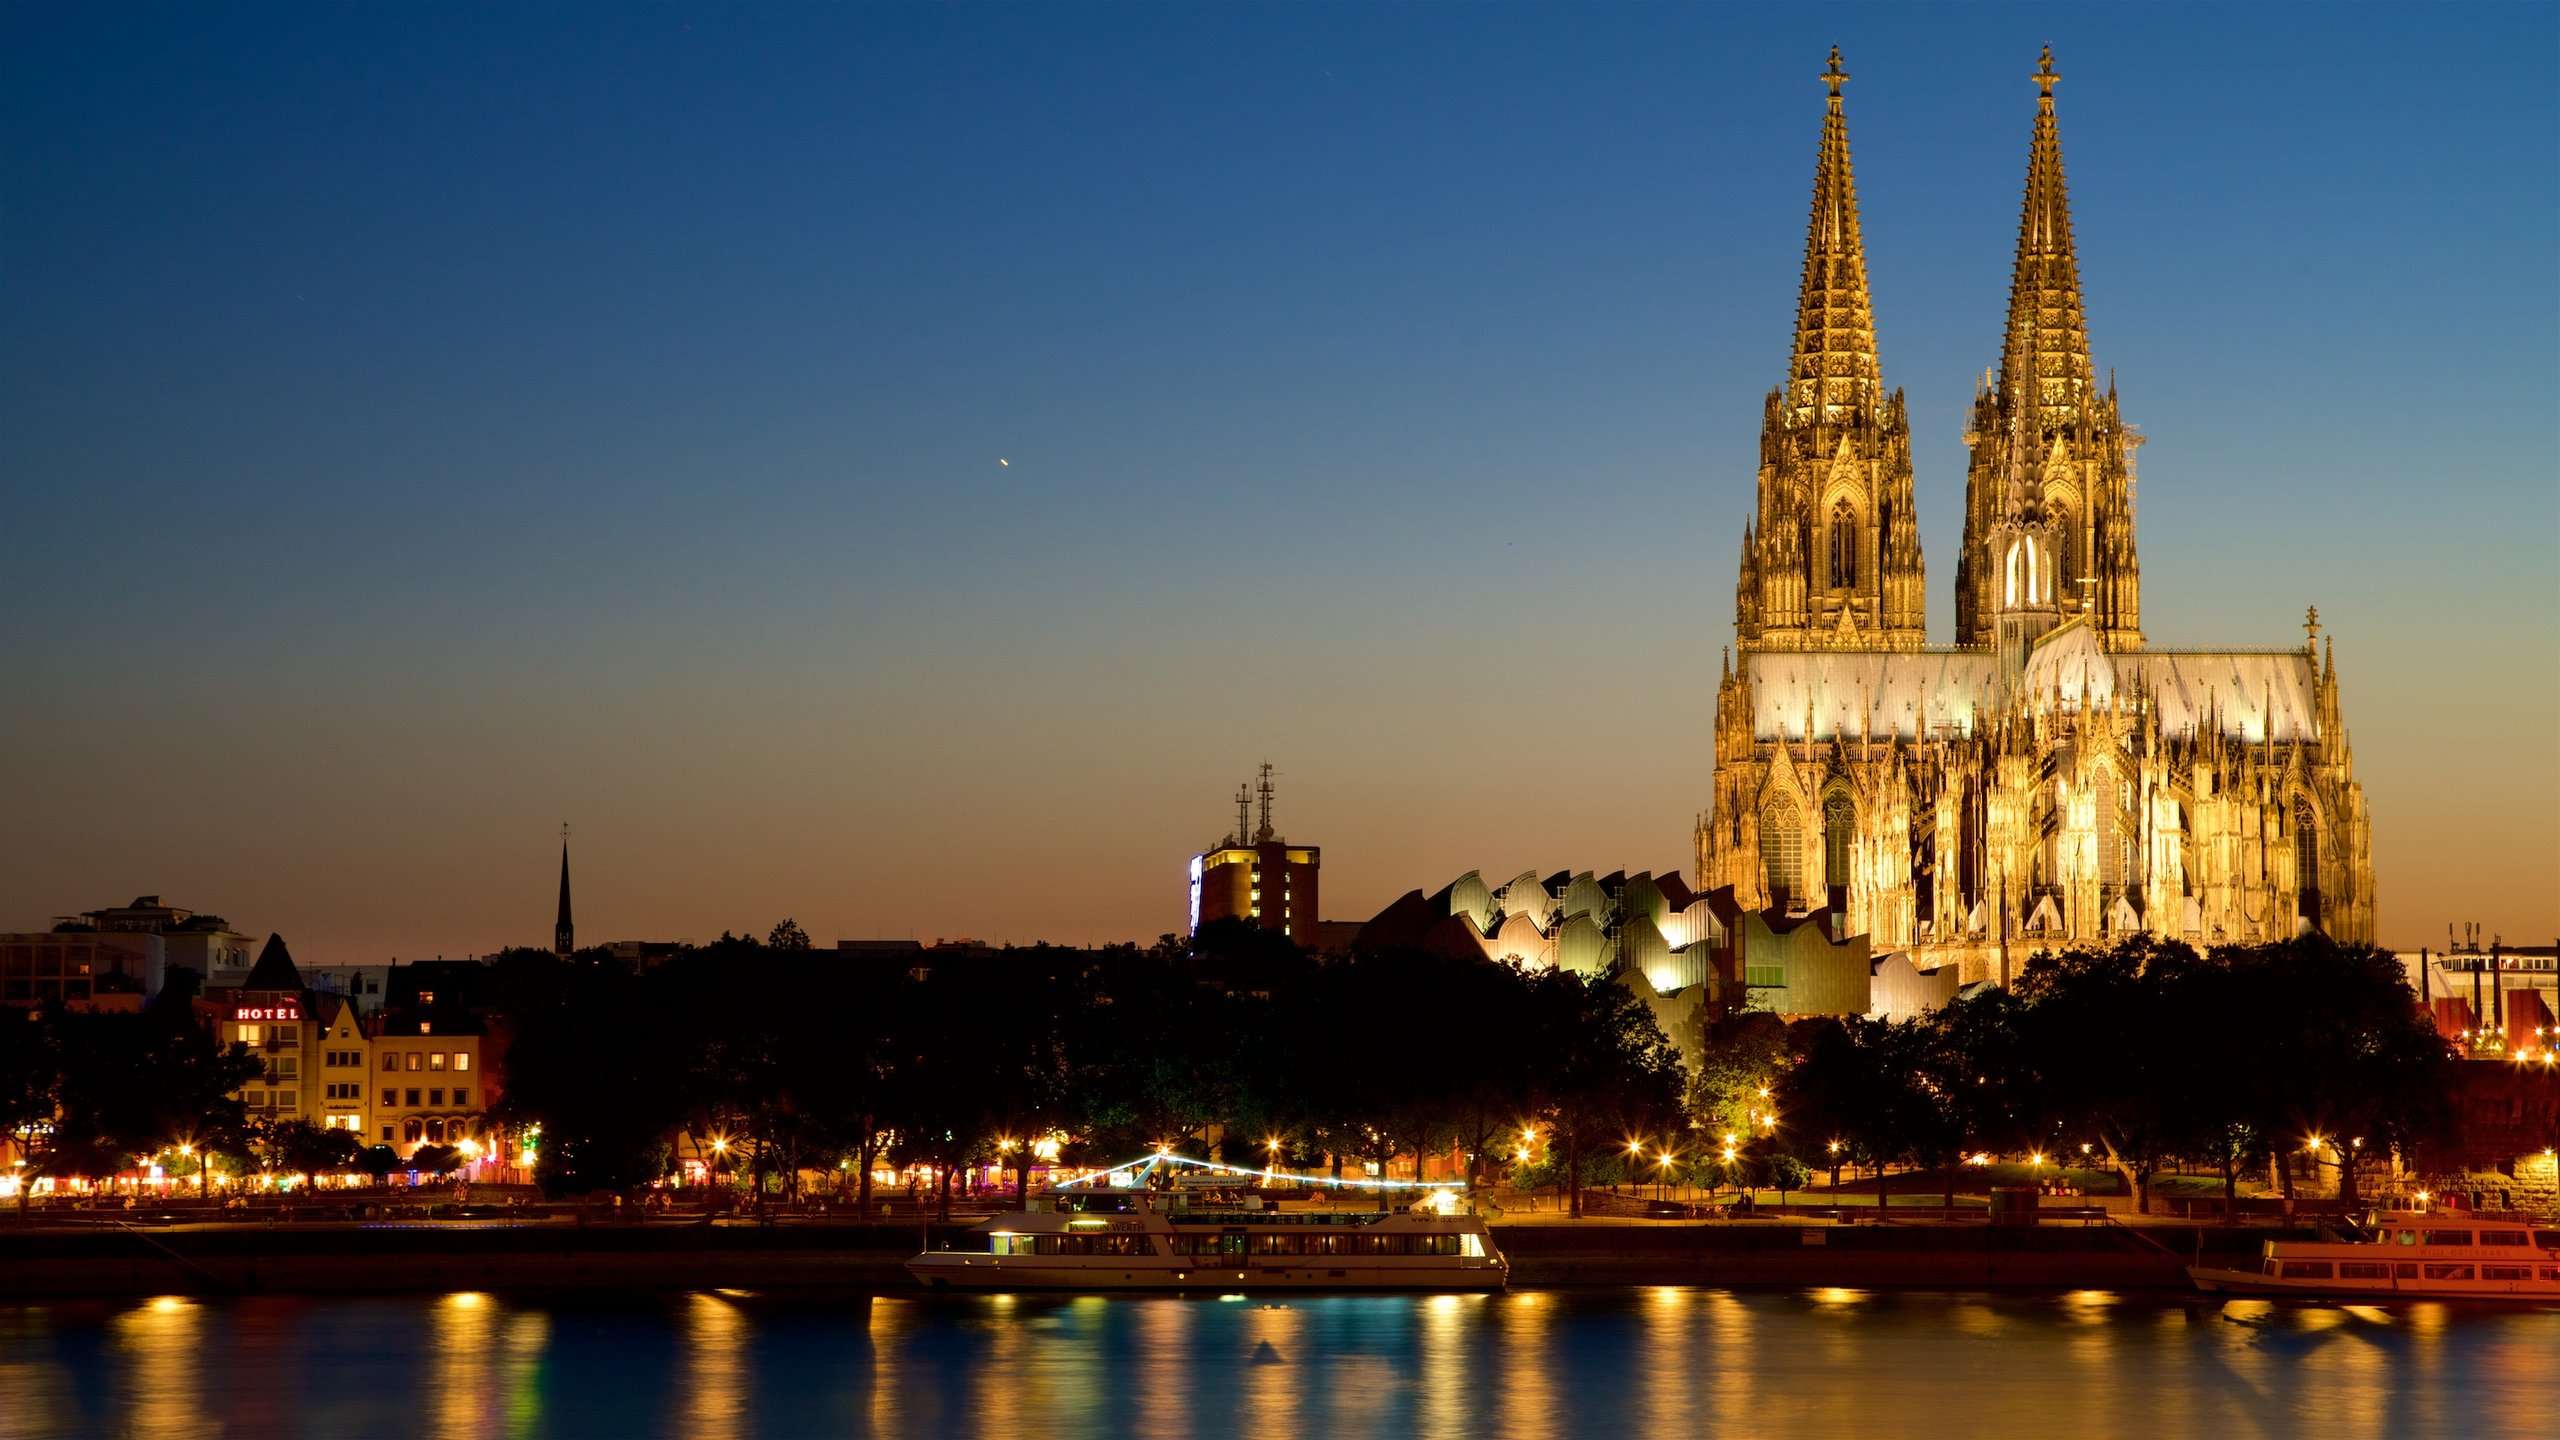 Marvel at the Gothic architecture and the shrine of the three wise men at one of the largest churches in the world.